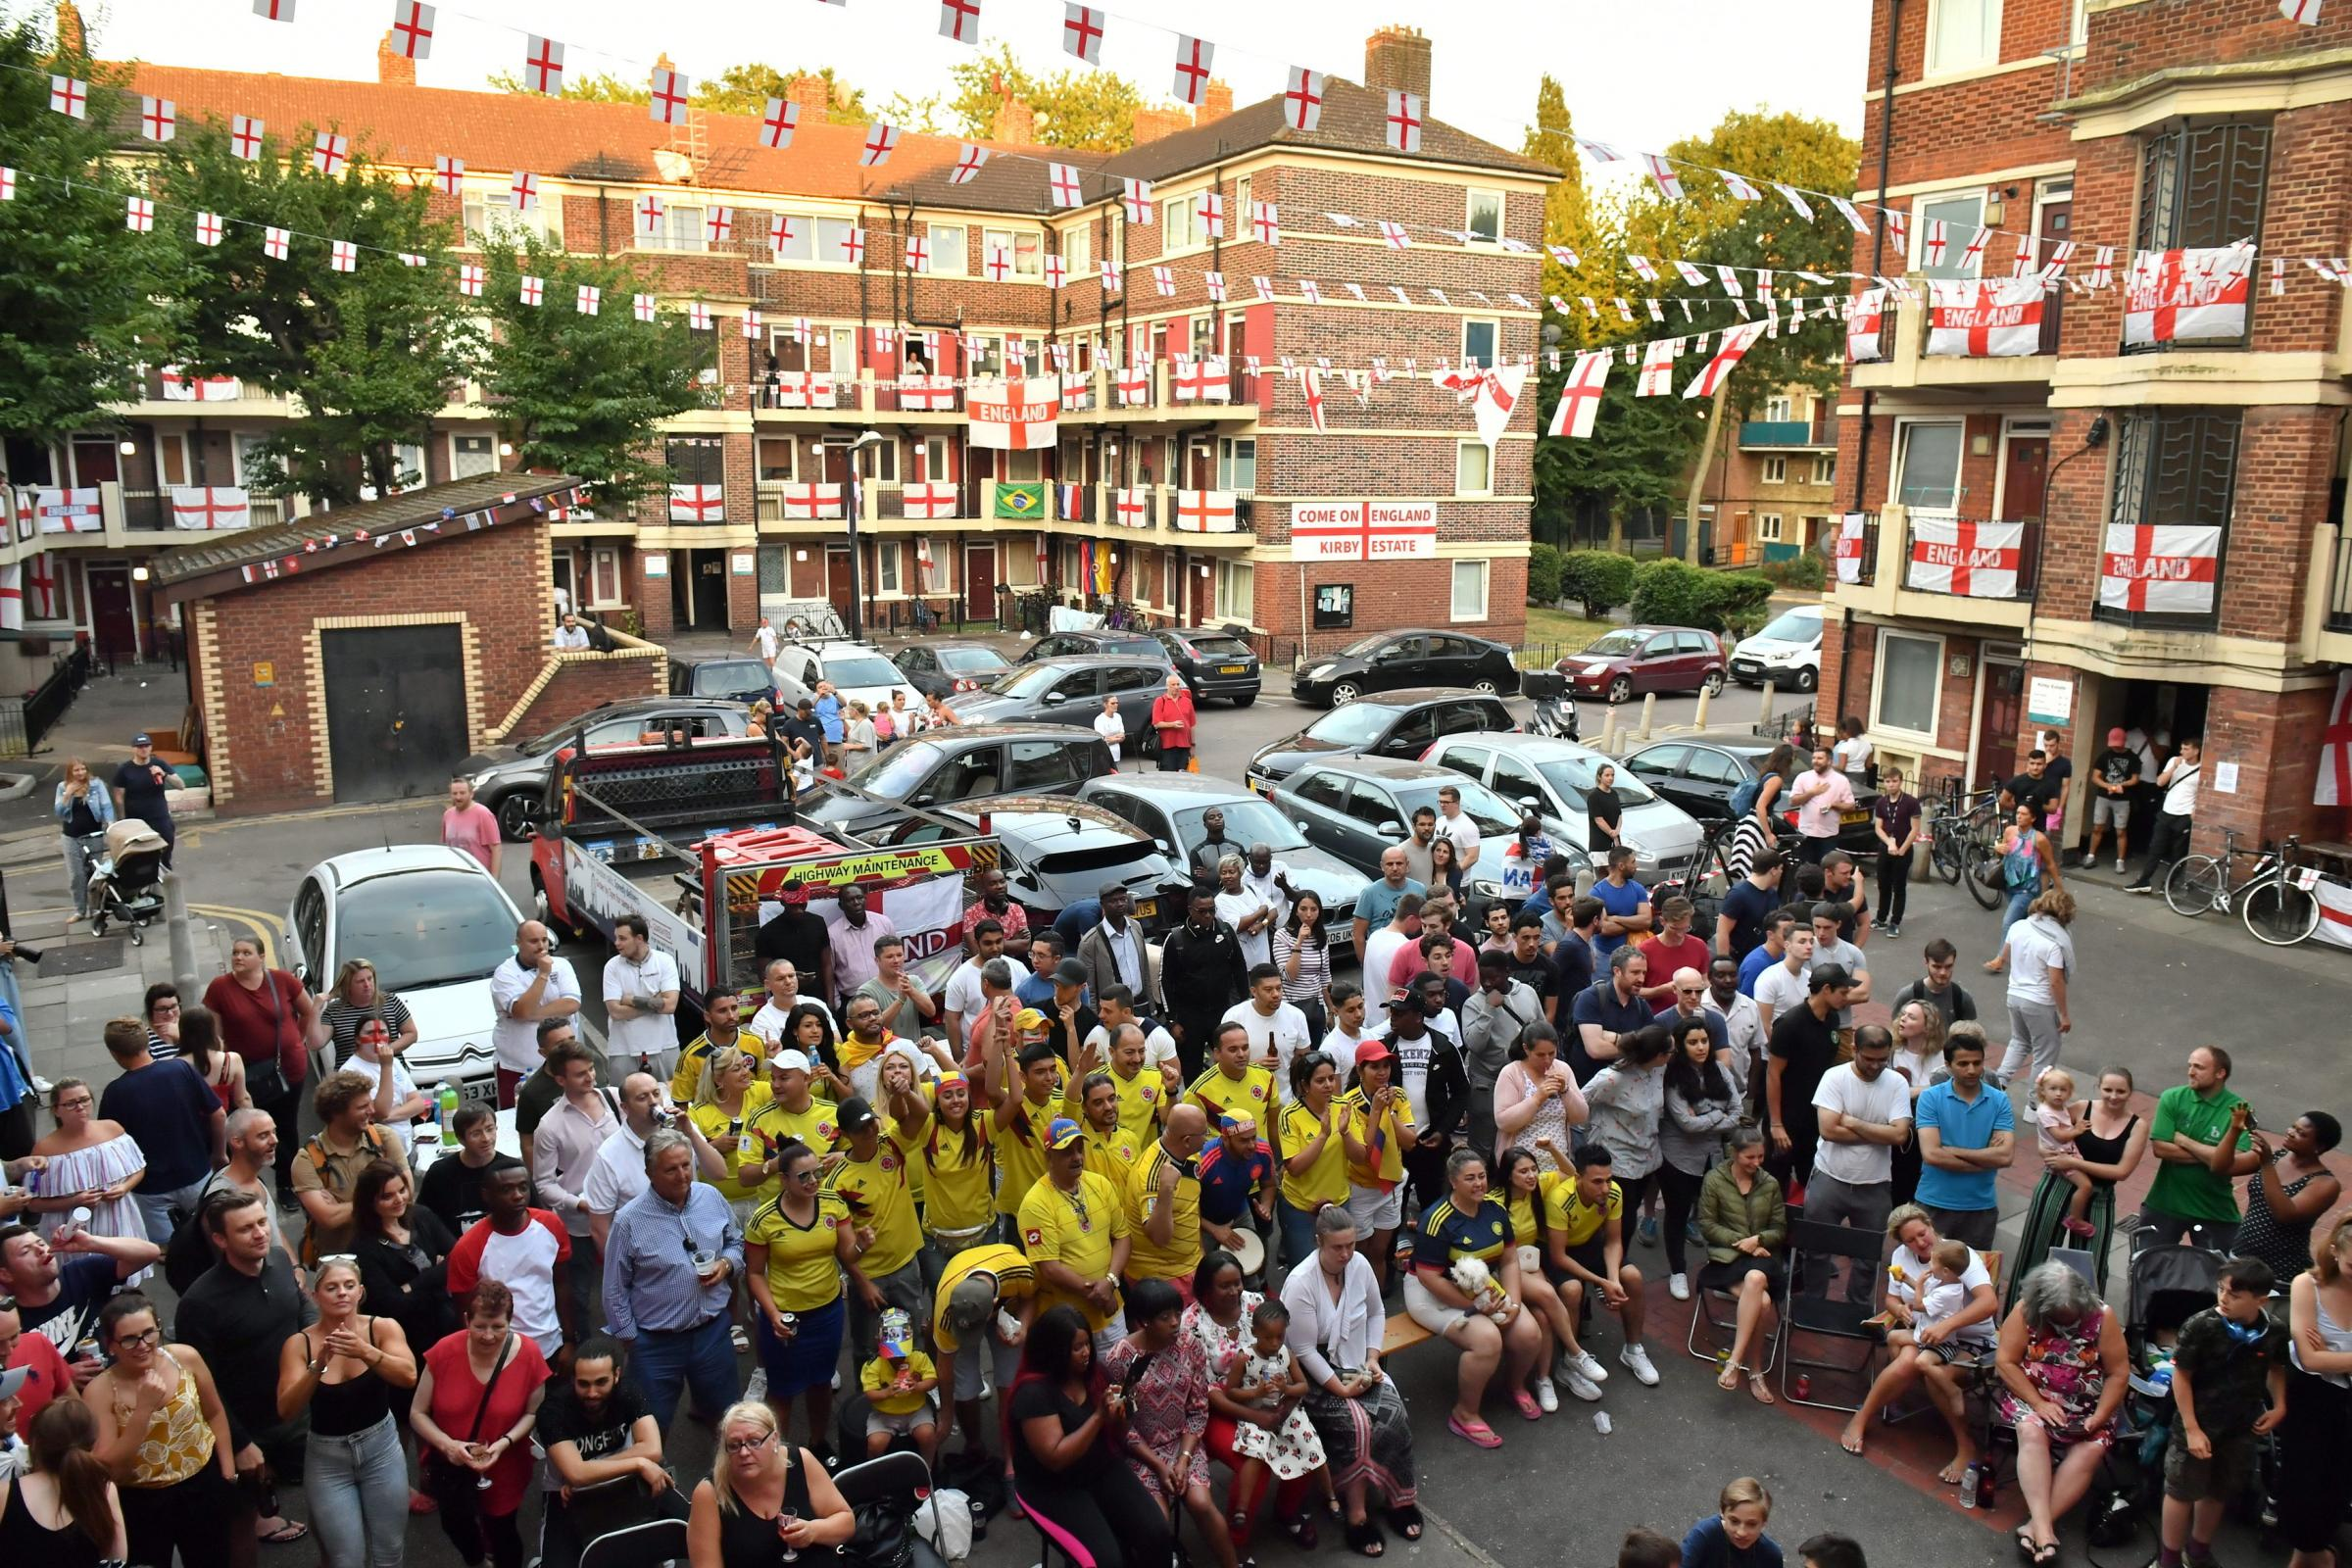 Fans of England and Colombia watch the World Cup match between the two nations on the Kirby Estate in Bermondsey, south London. (Dominic Lipinski/PA)